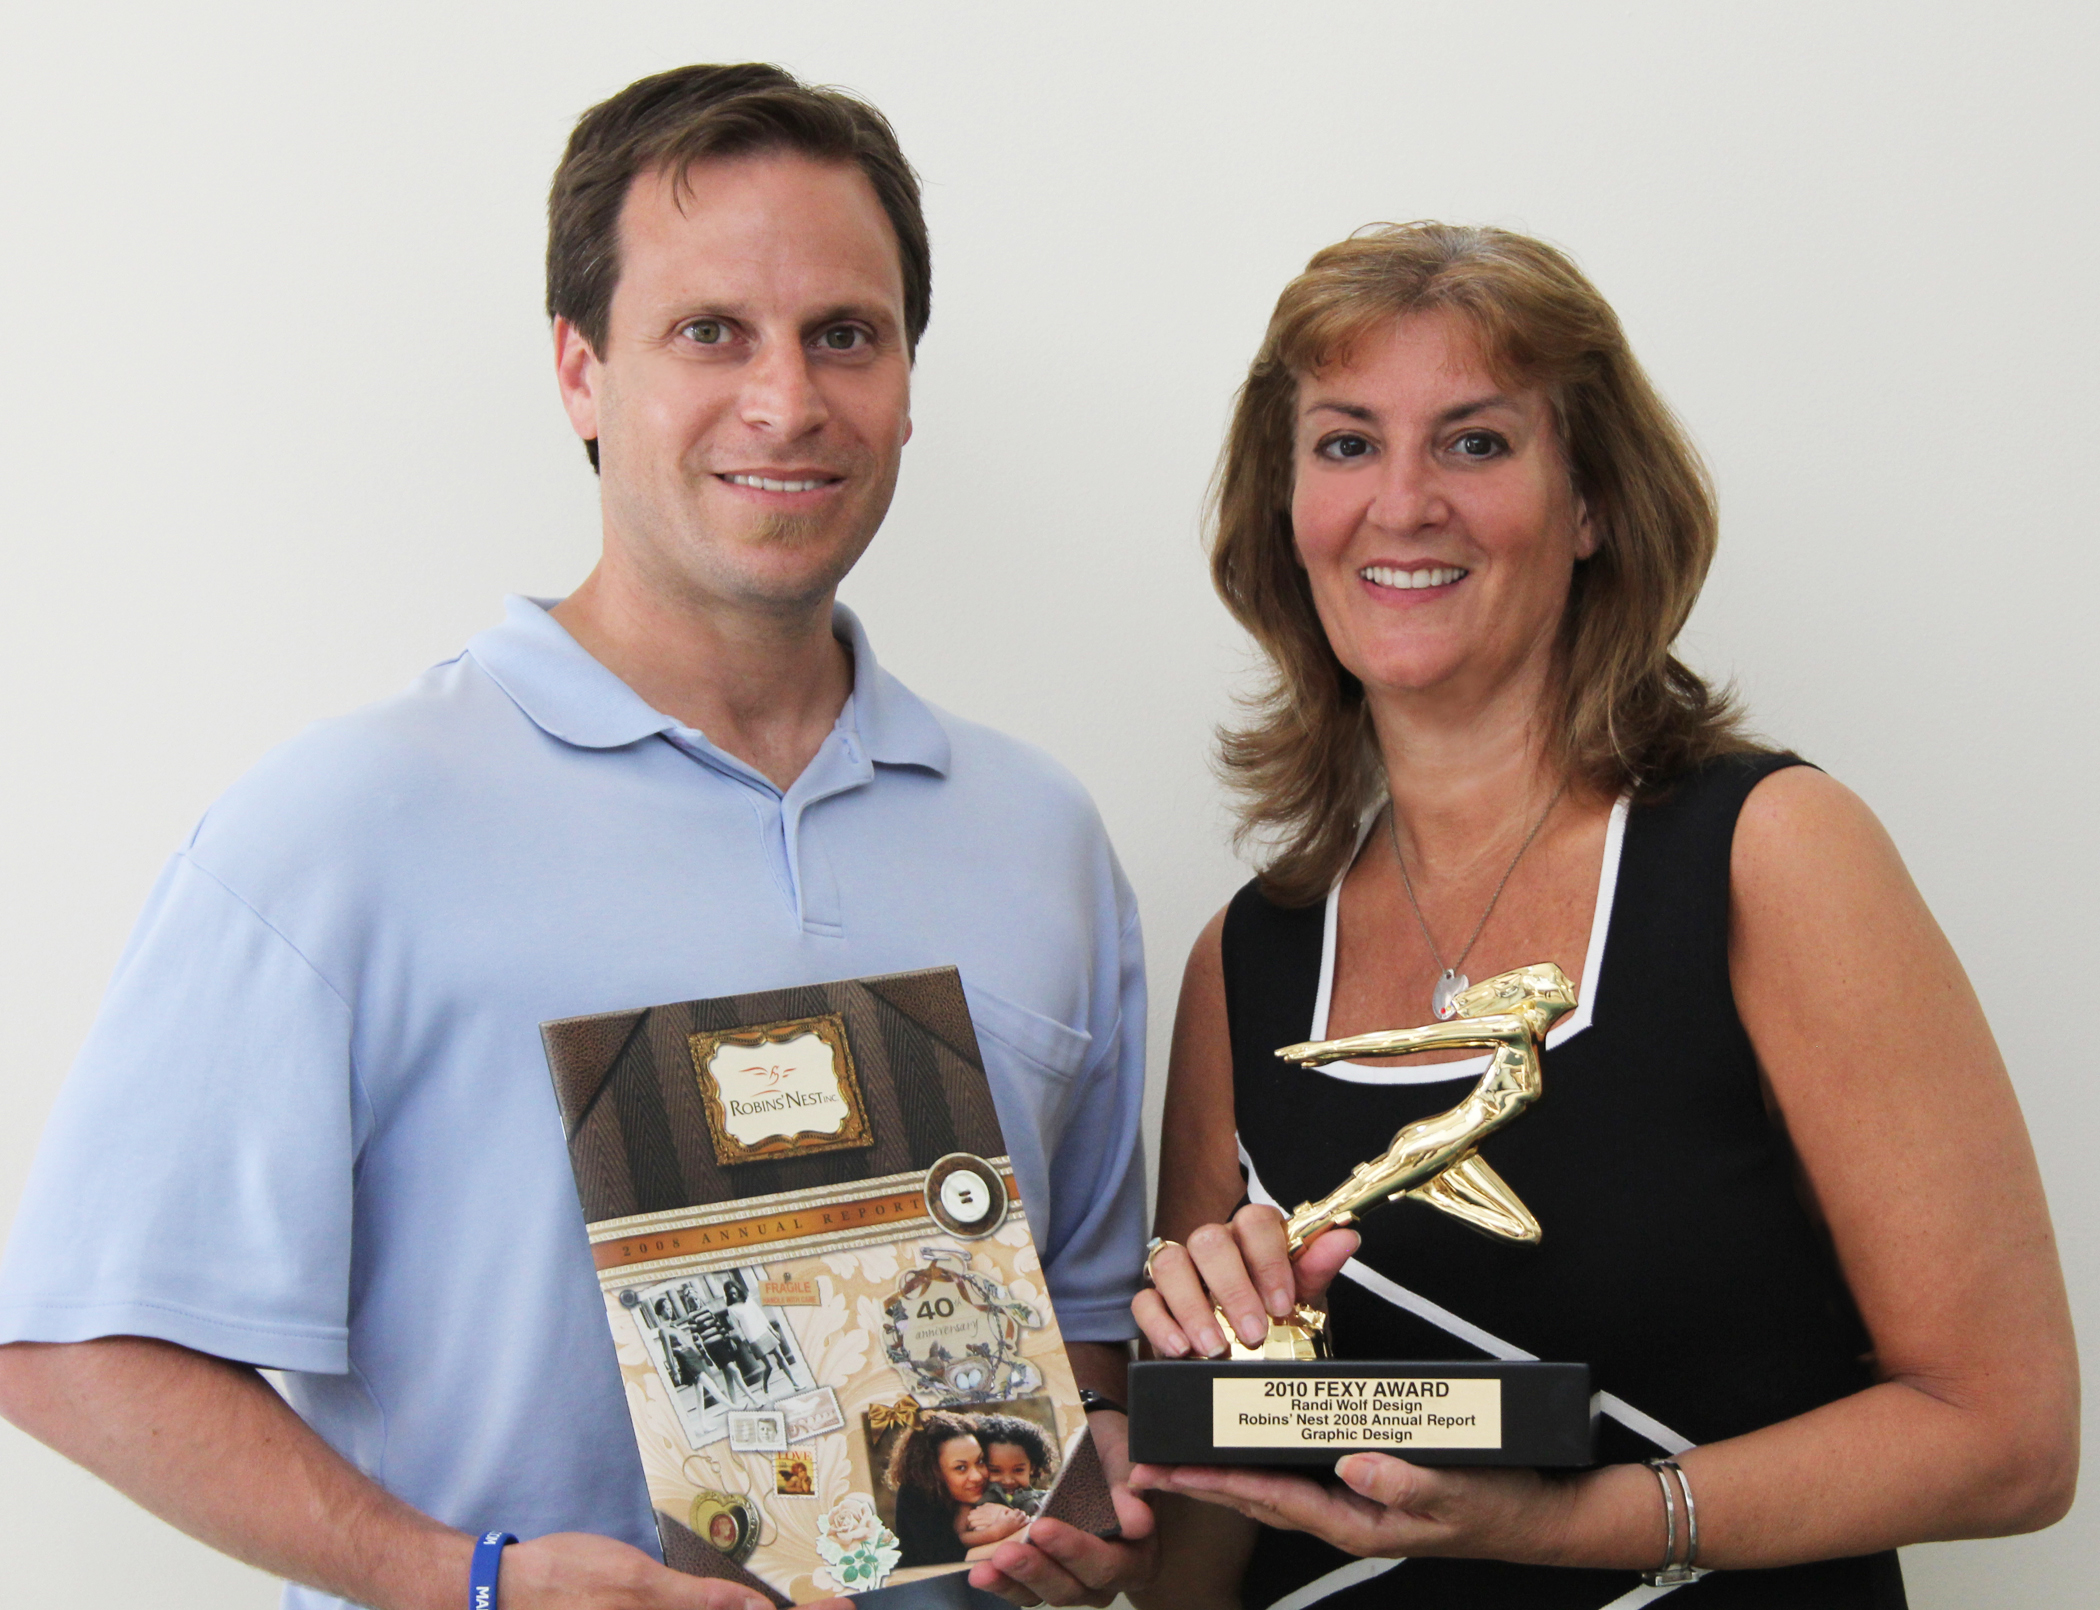 Dr. Anthony DiFabio, CEO of Robins' Nest poses with Randi Wolf after she won a Gold Award for their 40th Anniversary Annual Report.